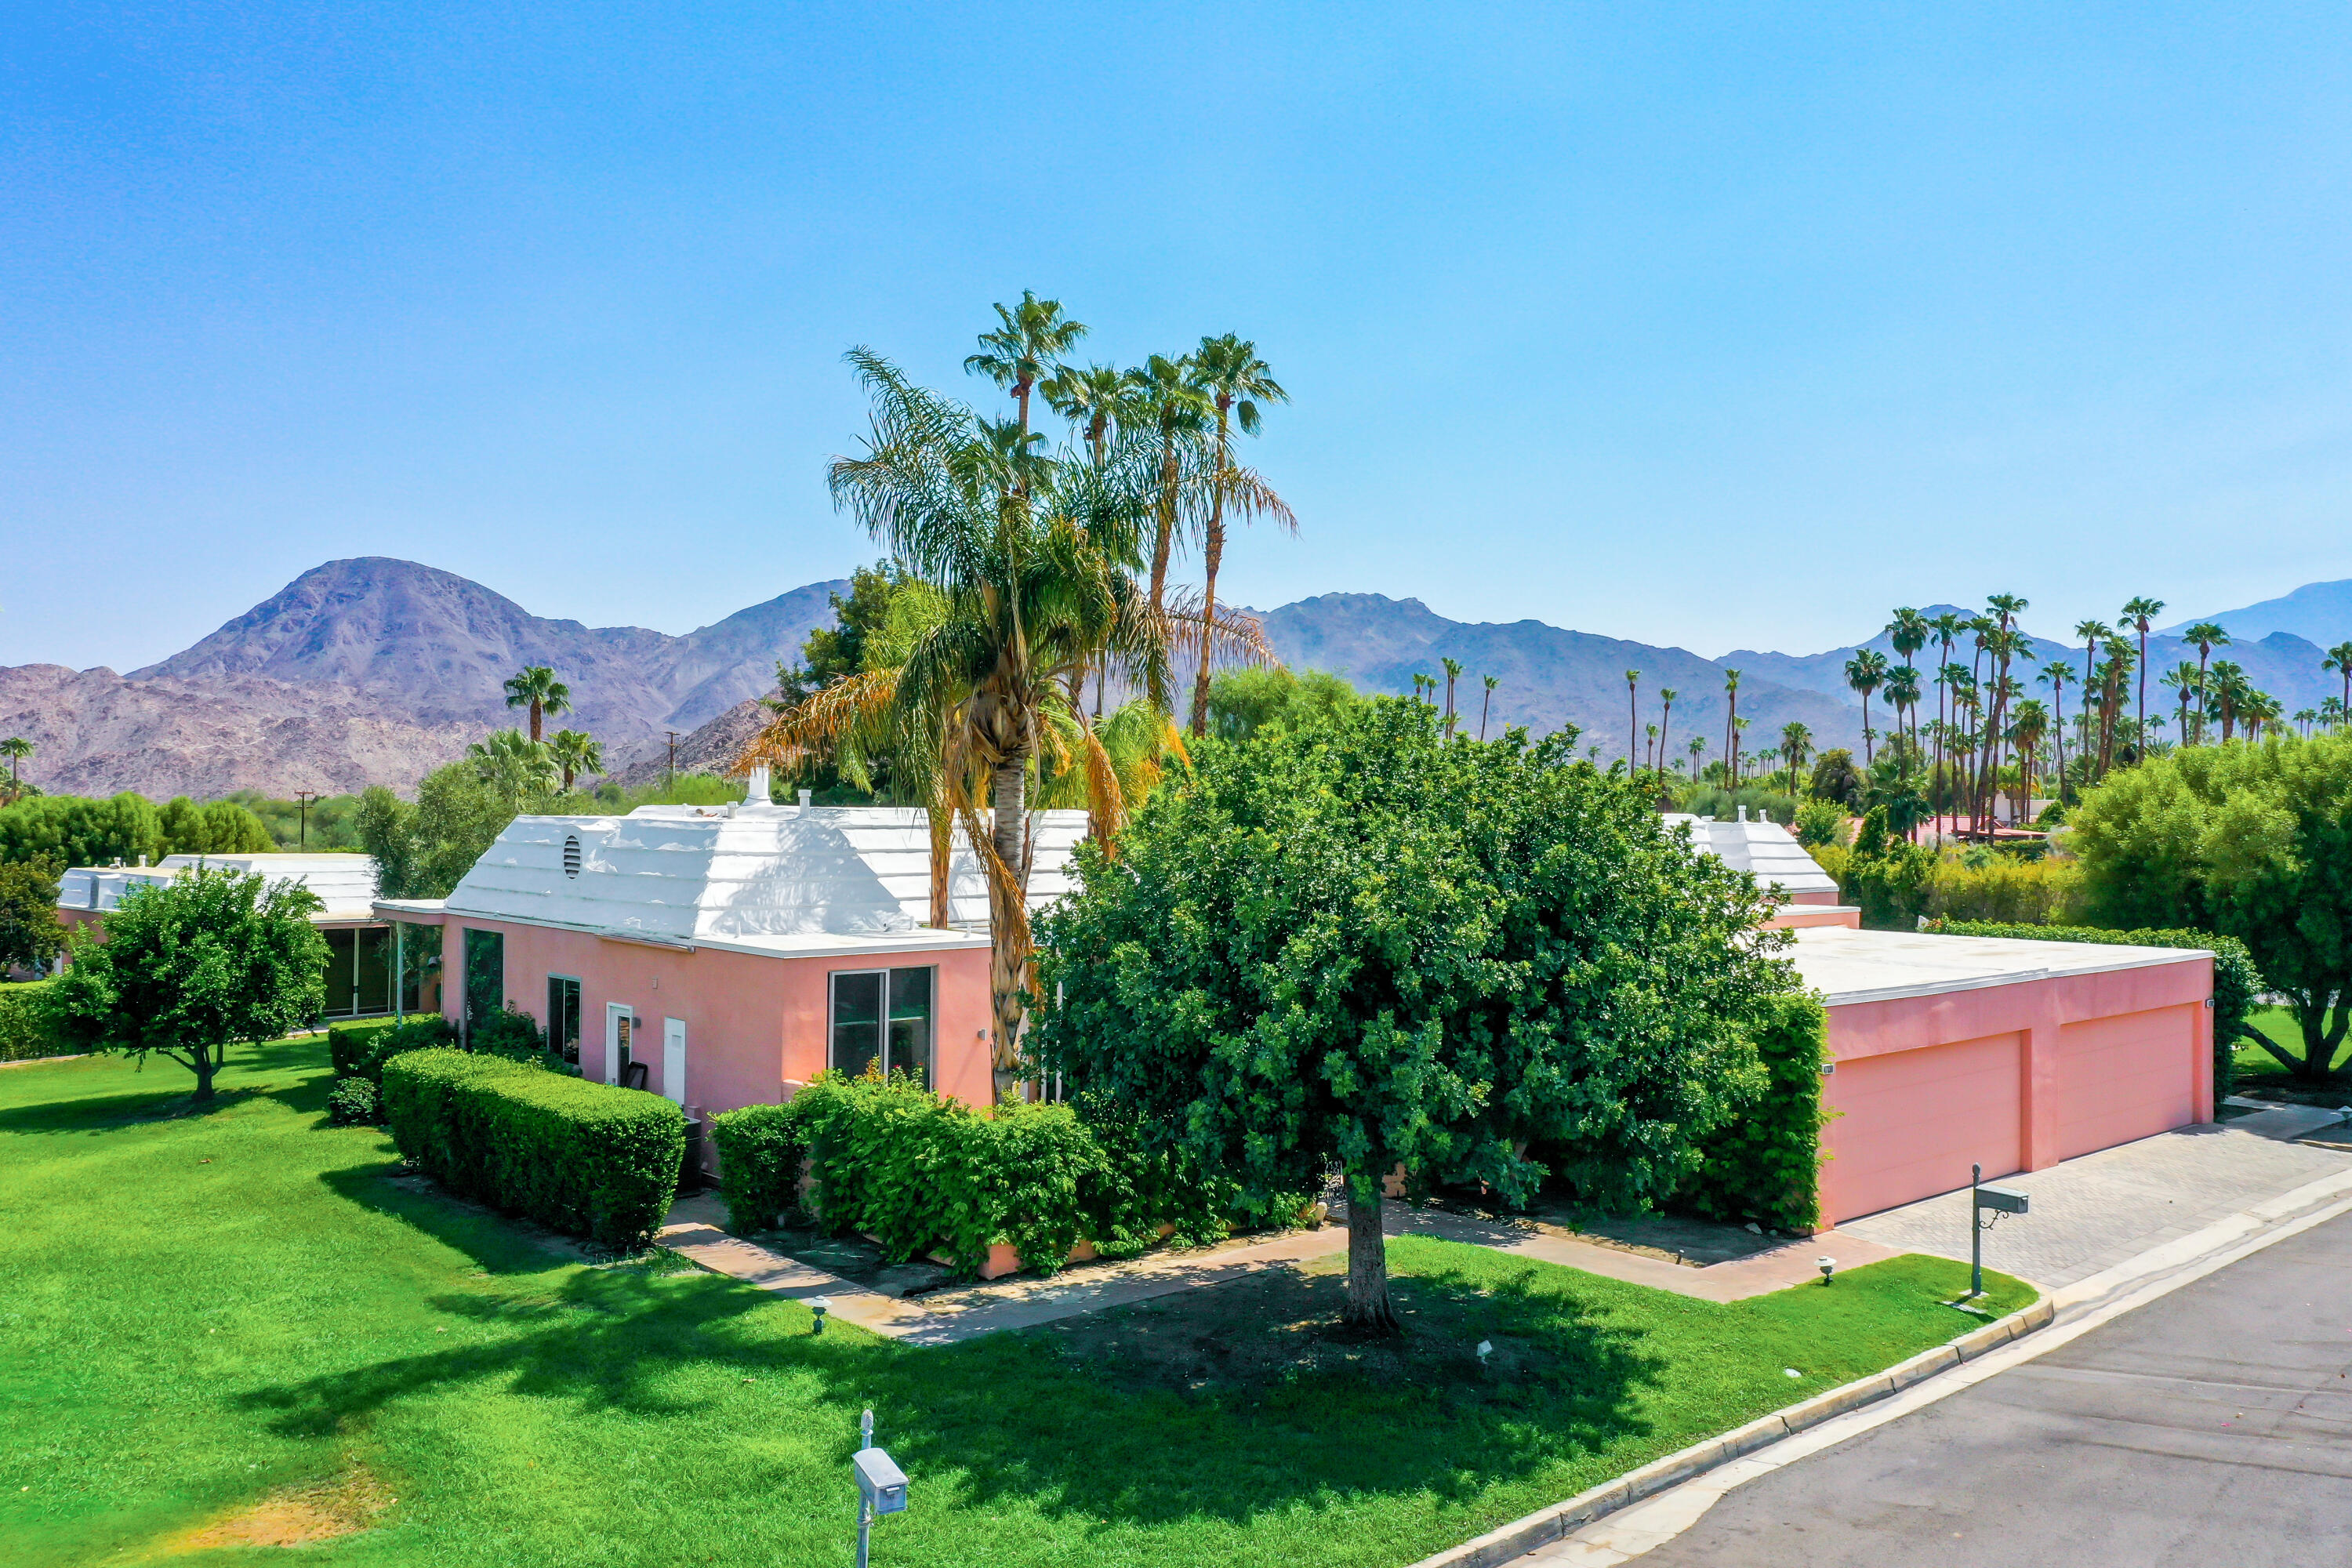 Welcome to the prestigious Marrakesh Country Club in the heart of Palm Desert. Upon entering this community you will be welcomed by the beautiful modern architecture that is well known in the desert. This condo has been upgraded and is nothing short of stunning, with modern finishes throughout. This one wont last long!